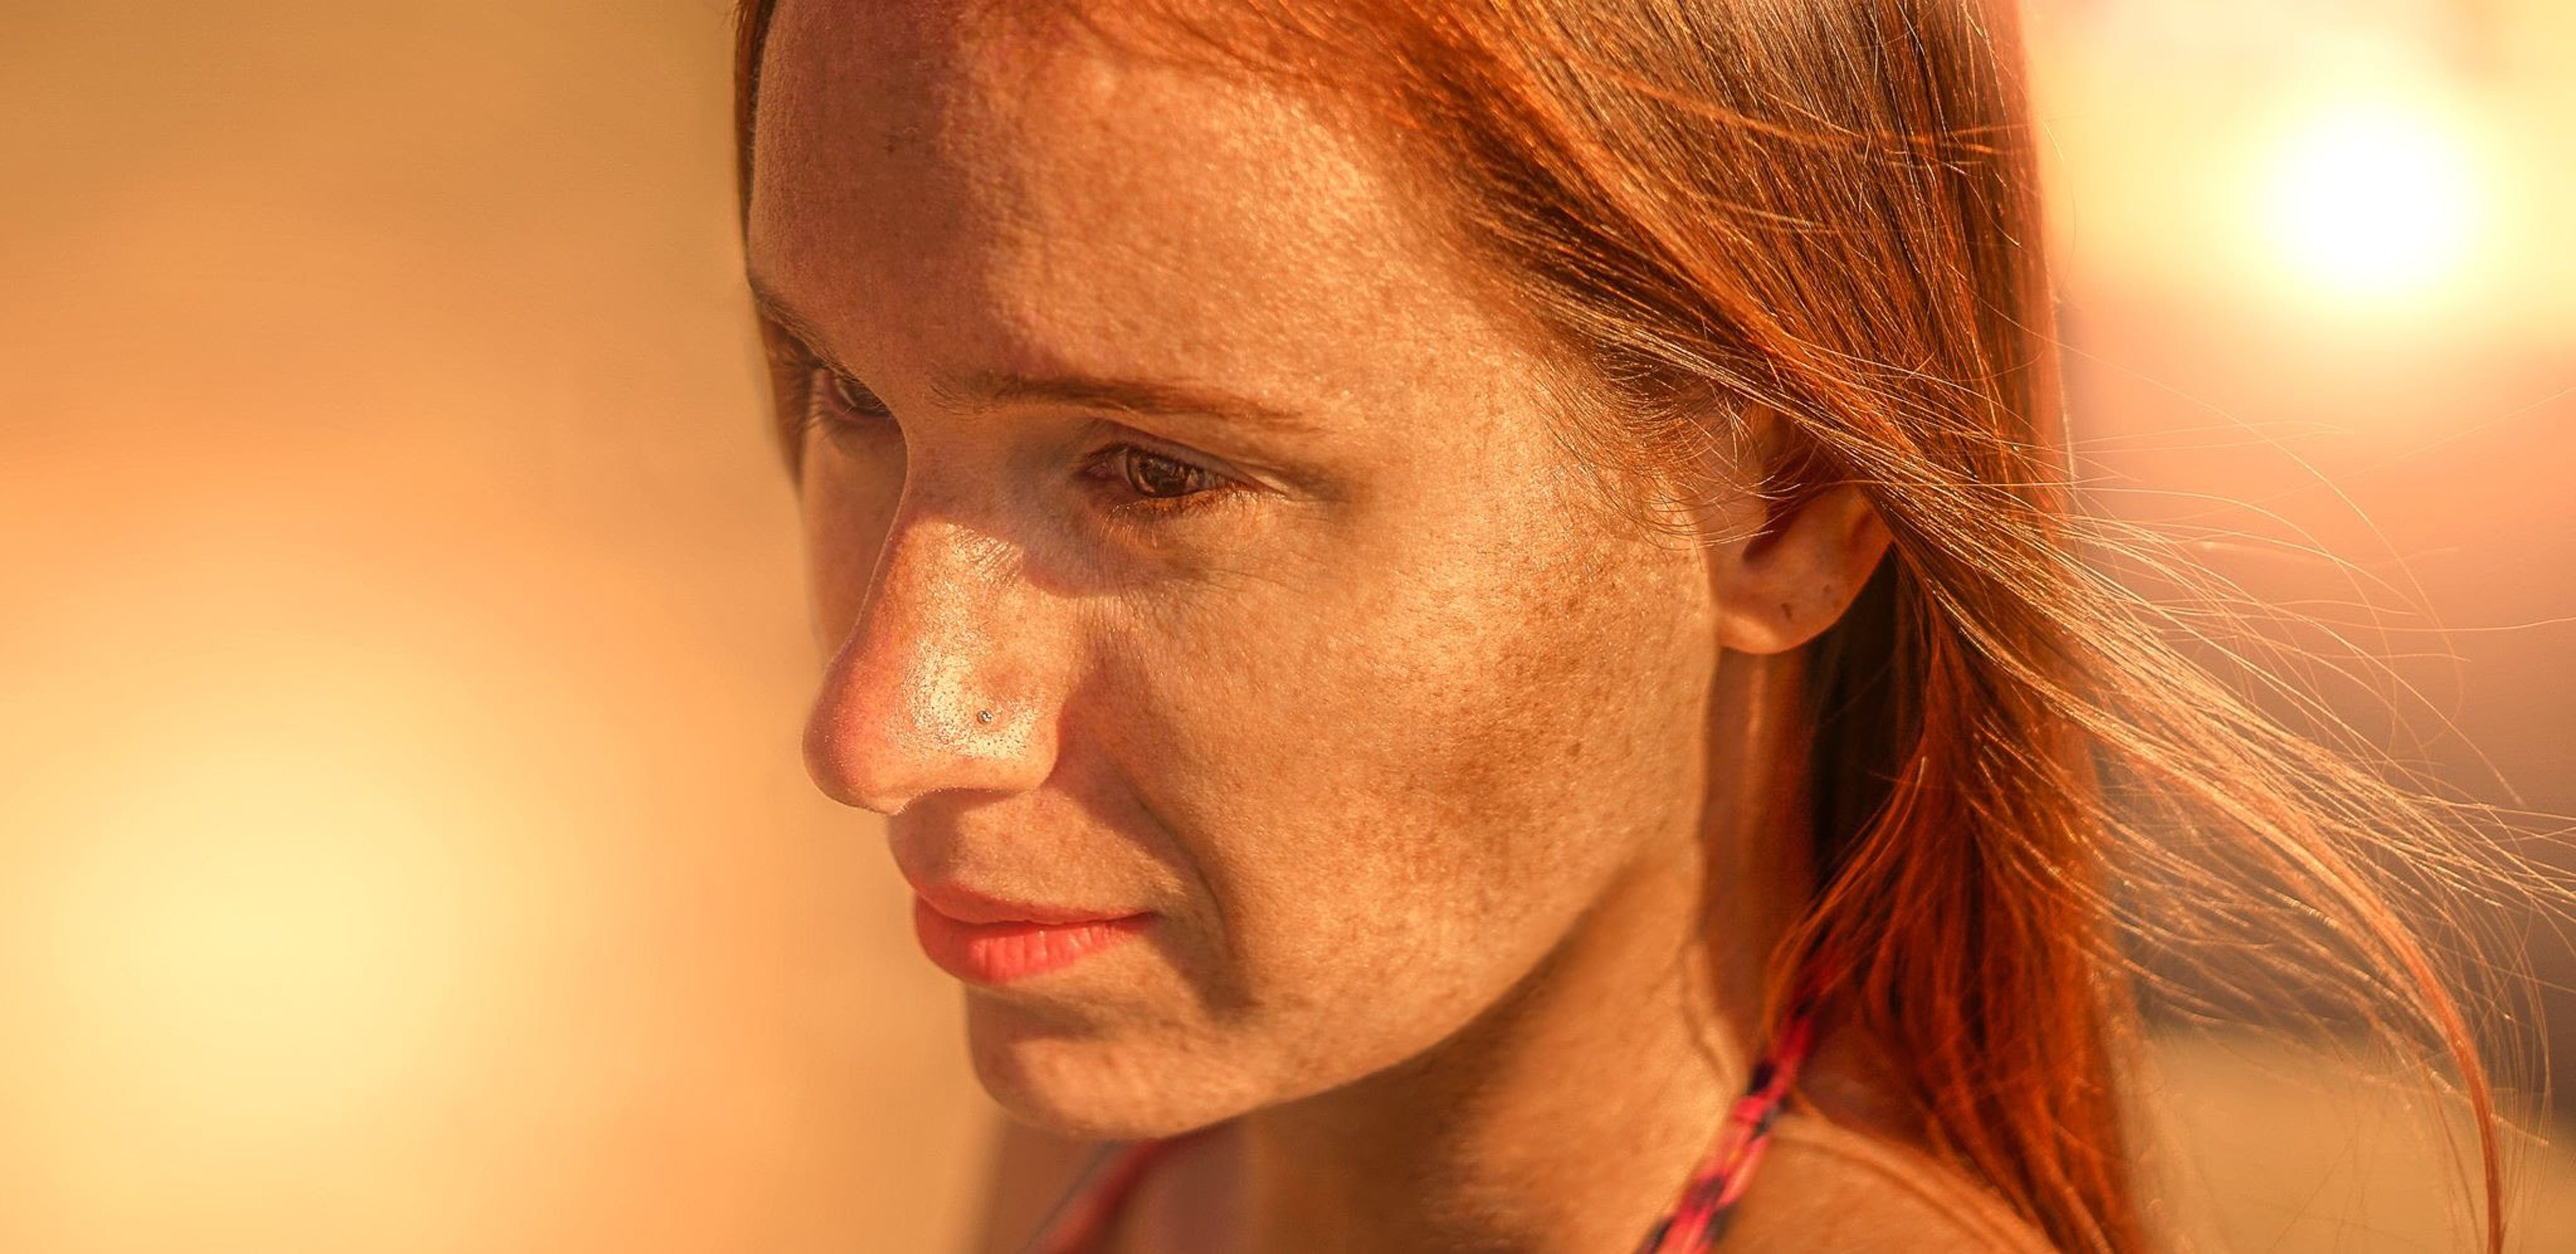 Free stock photo of beautiful woman, freckles, ginger, orange